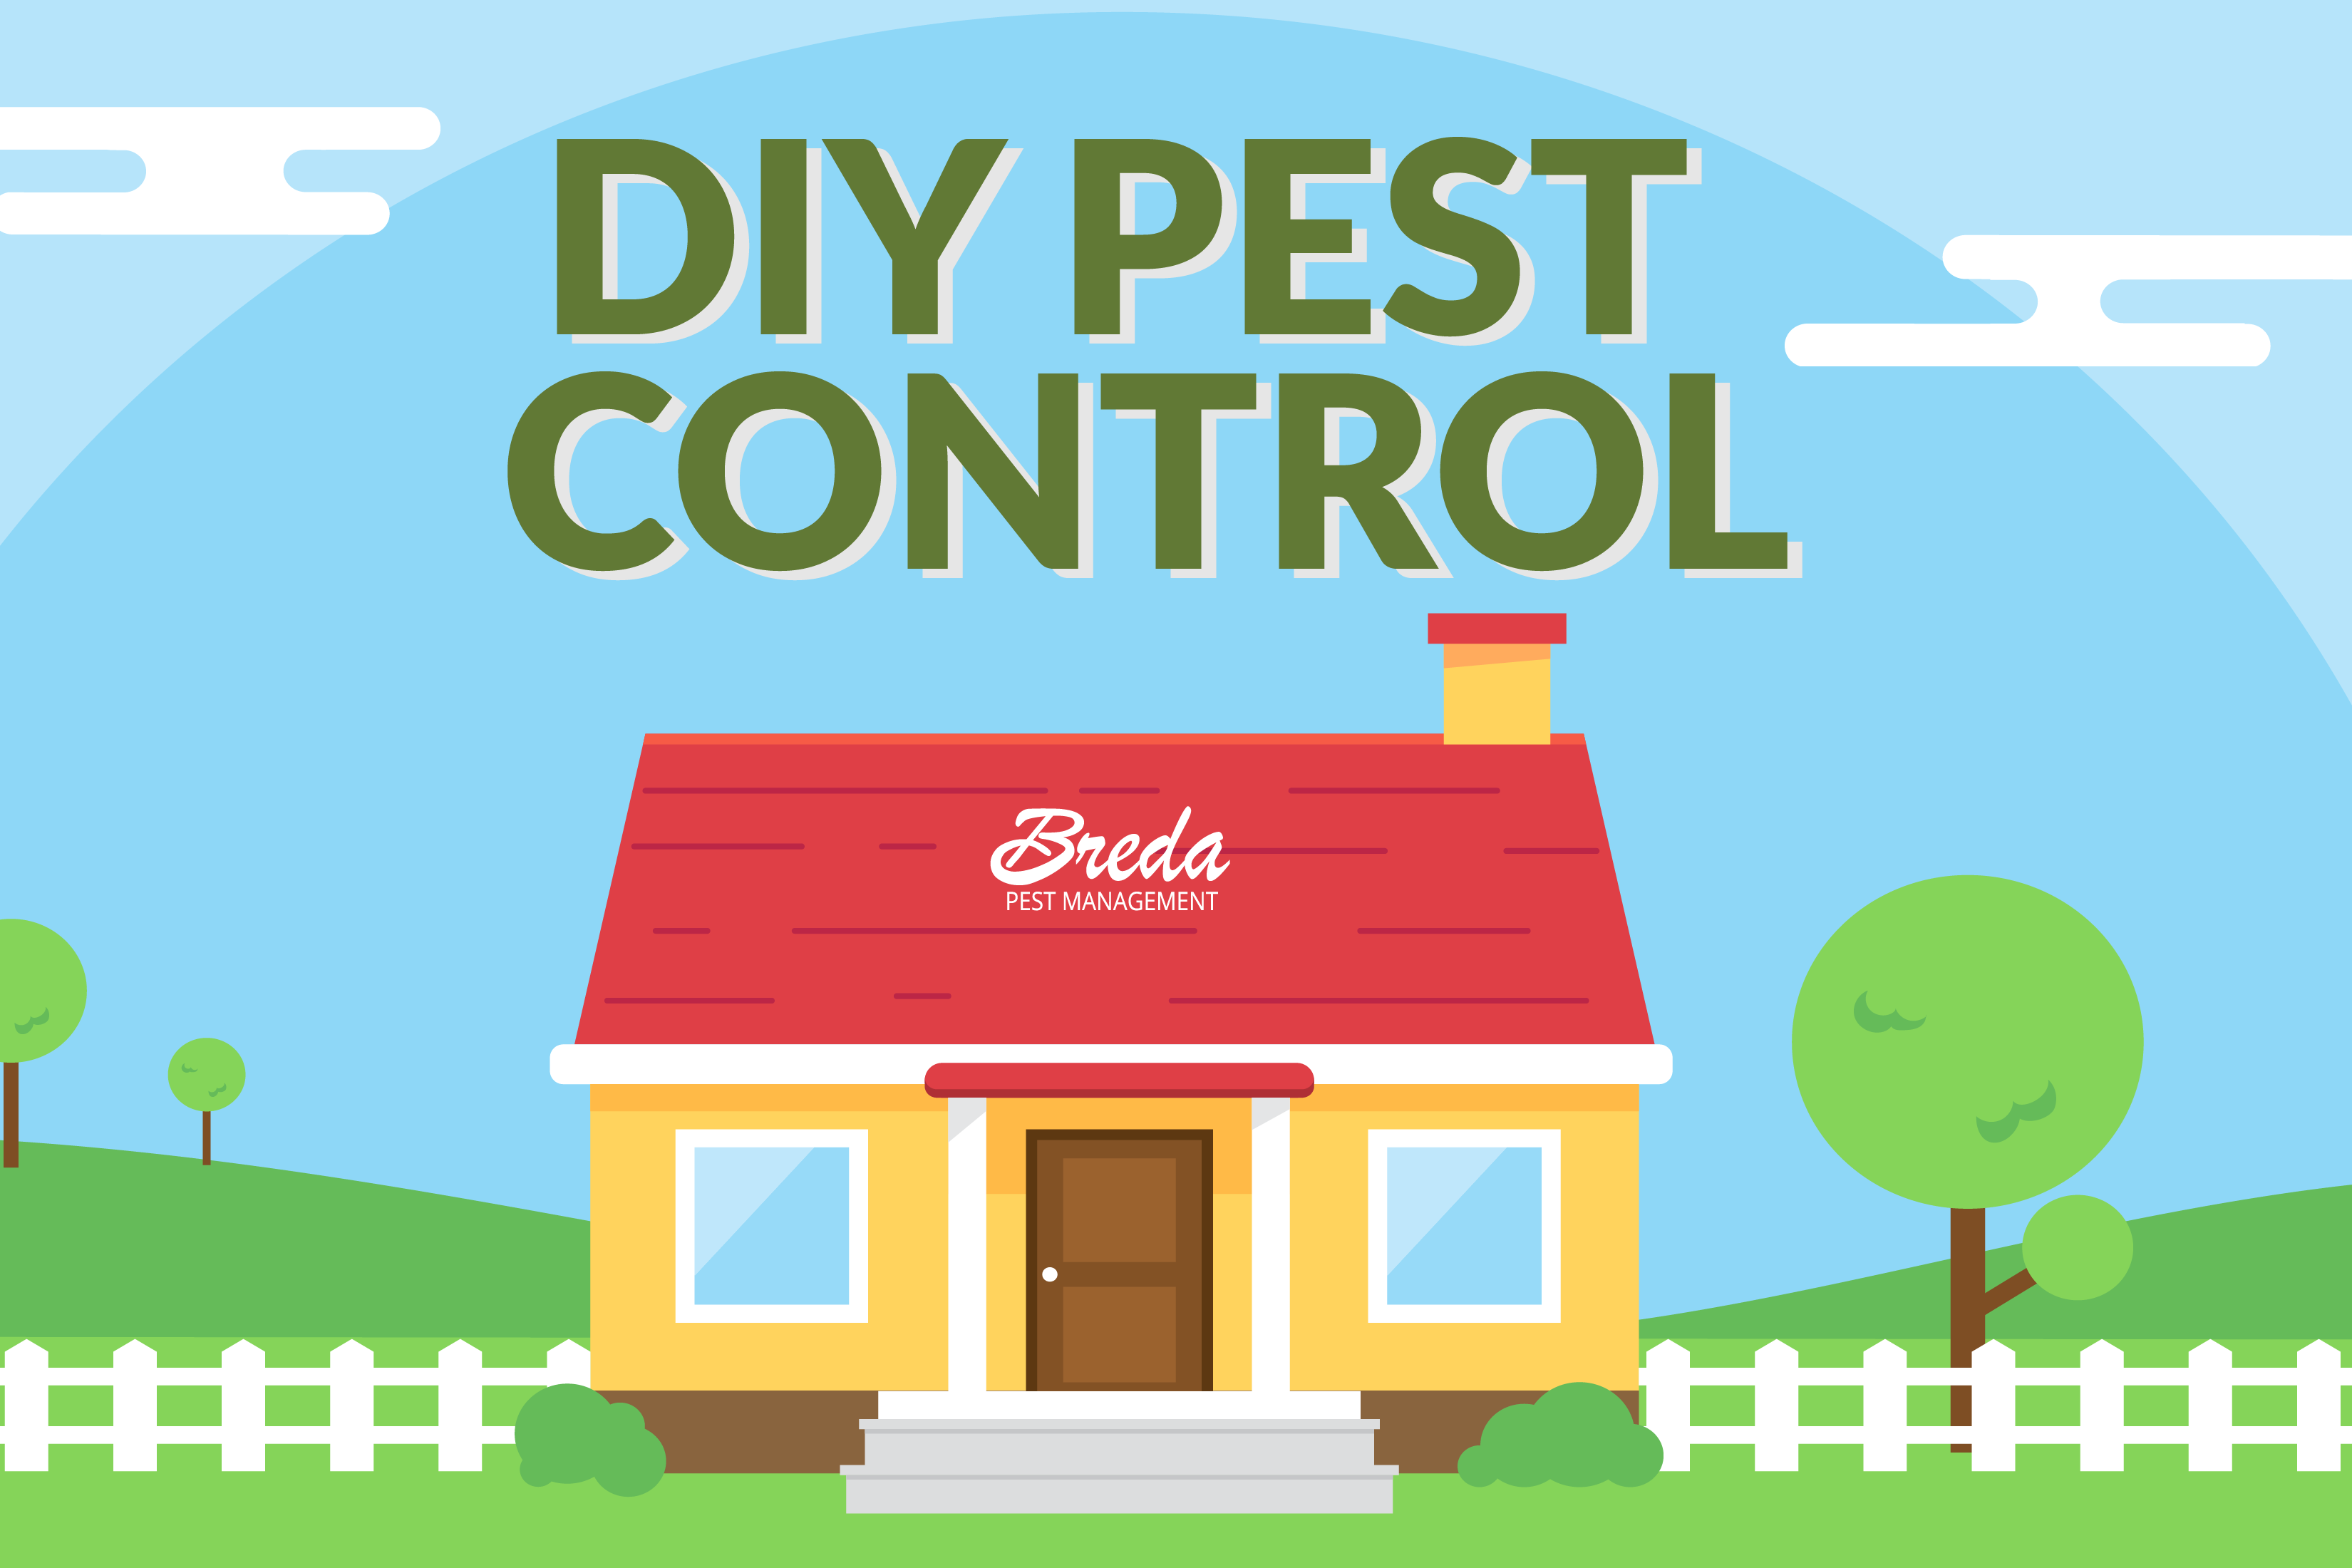 8 steps for do it yourself diy pest control breda pest management best tips for diy pest control solutioingenieria Image collections